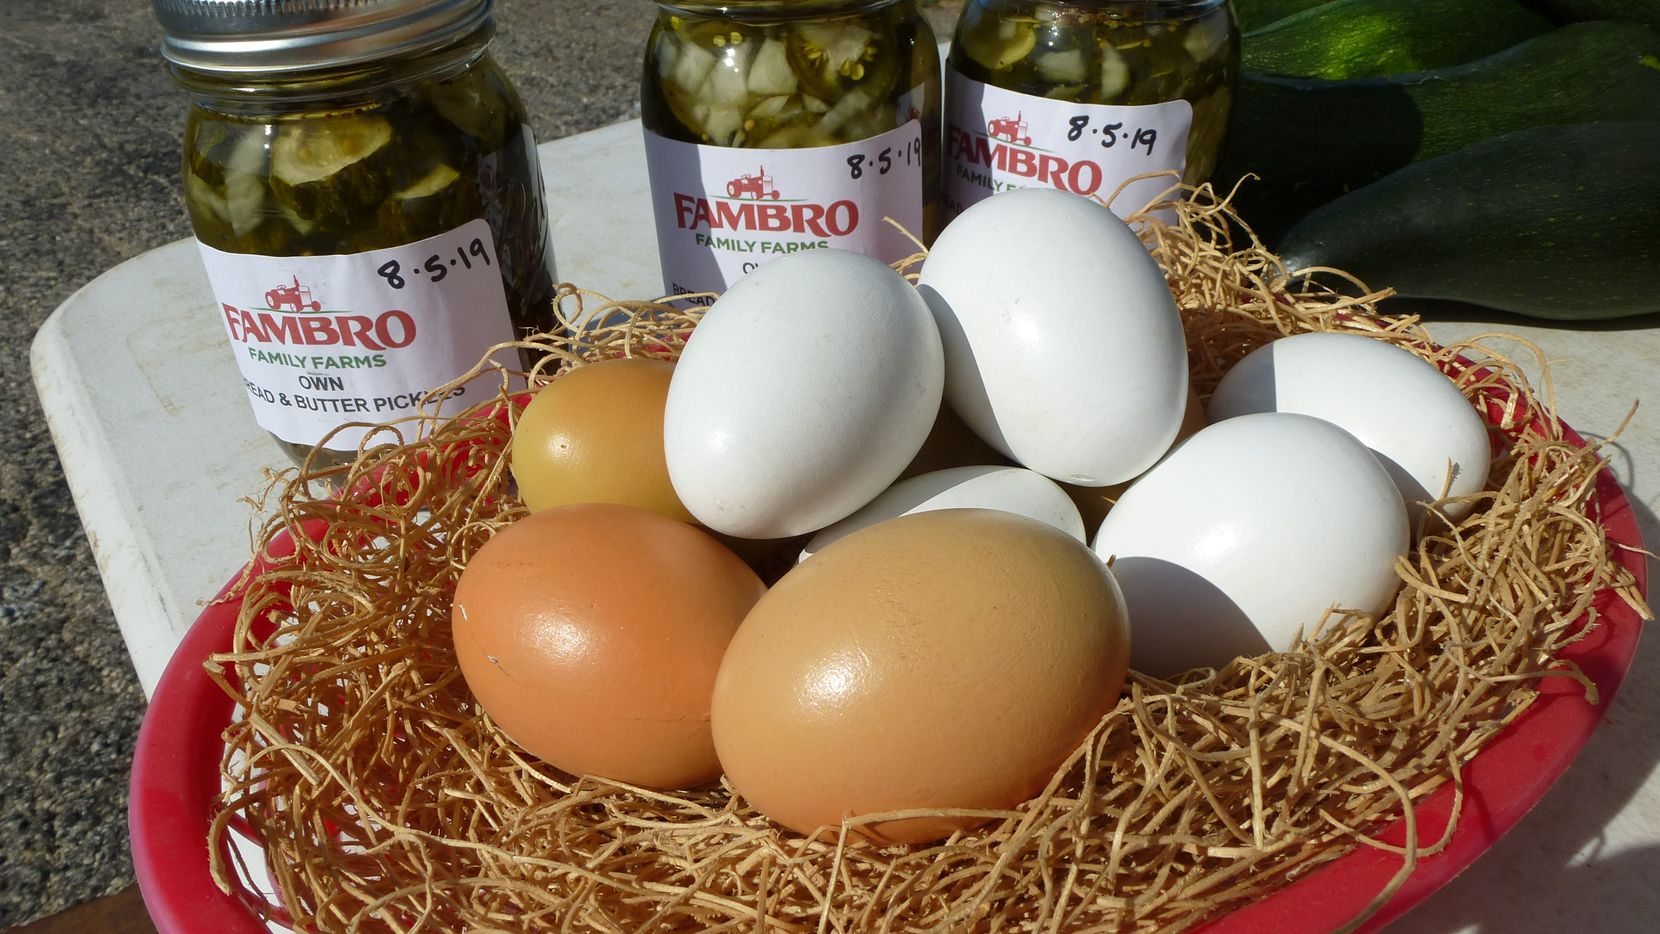 Fambro Family Farms from Breckenridge brings eggs, jarred pickles, eggplant, tomatoes and okra.